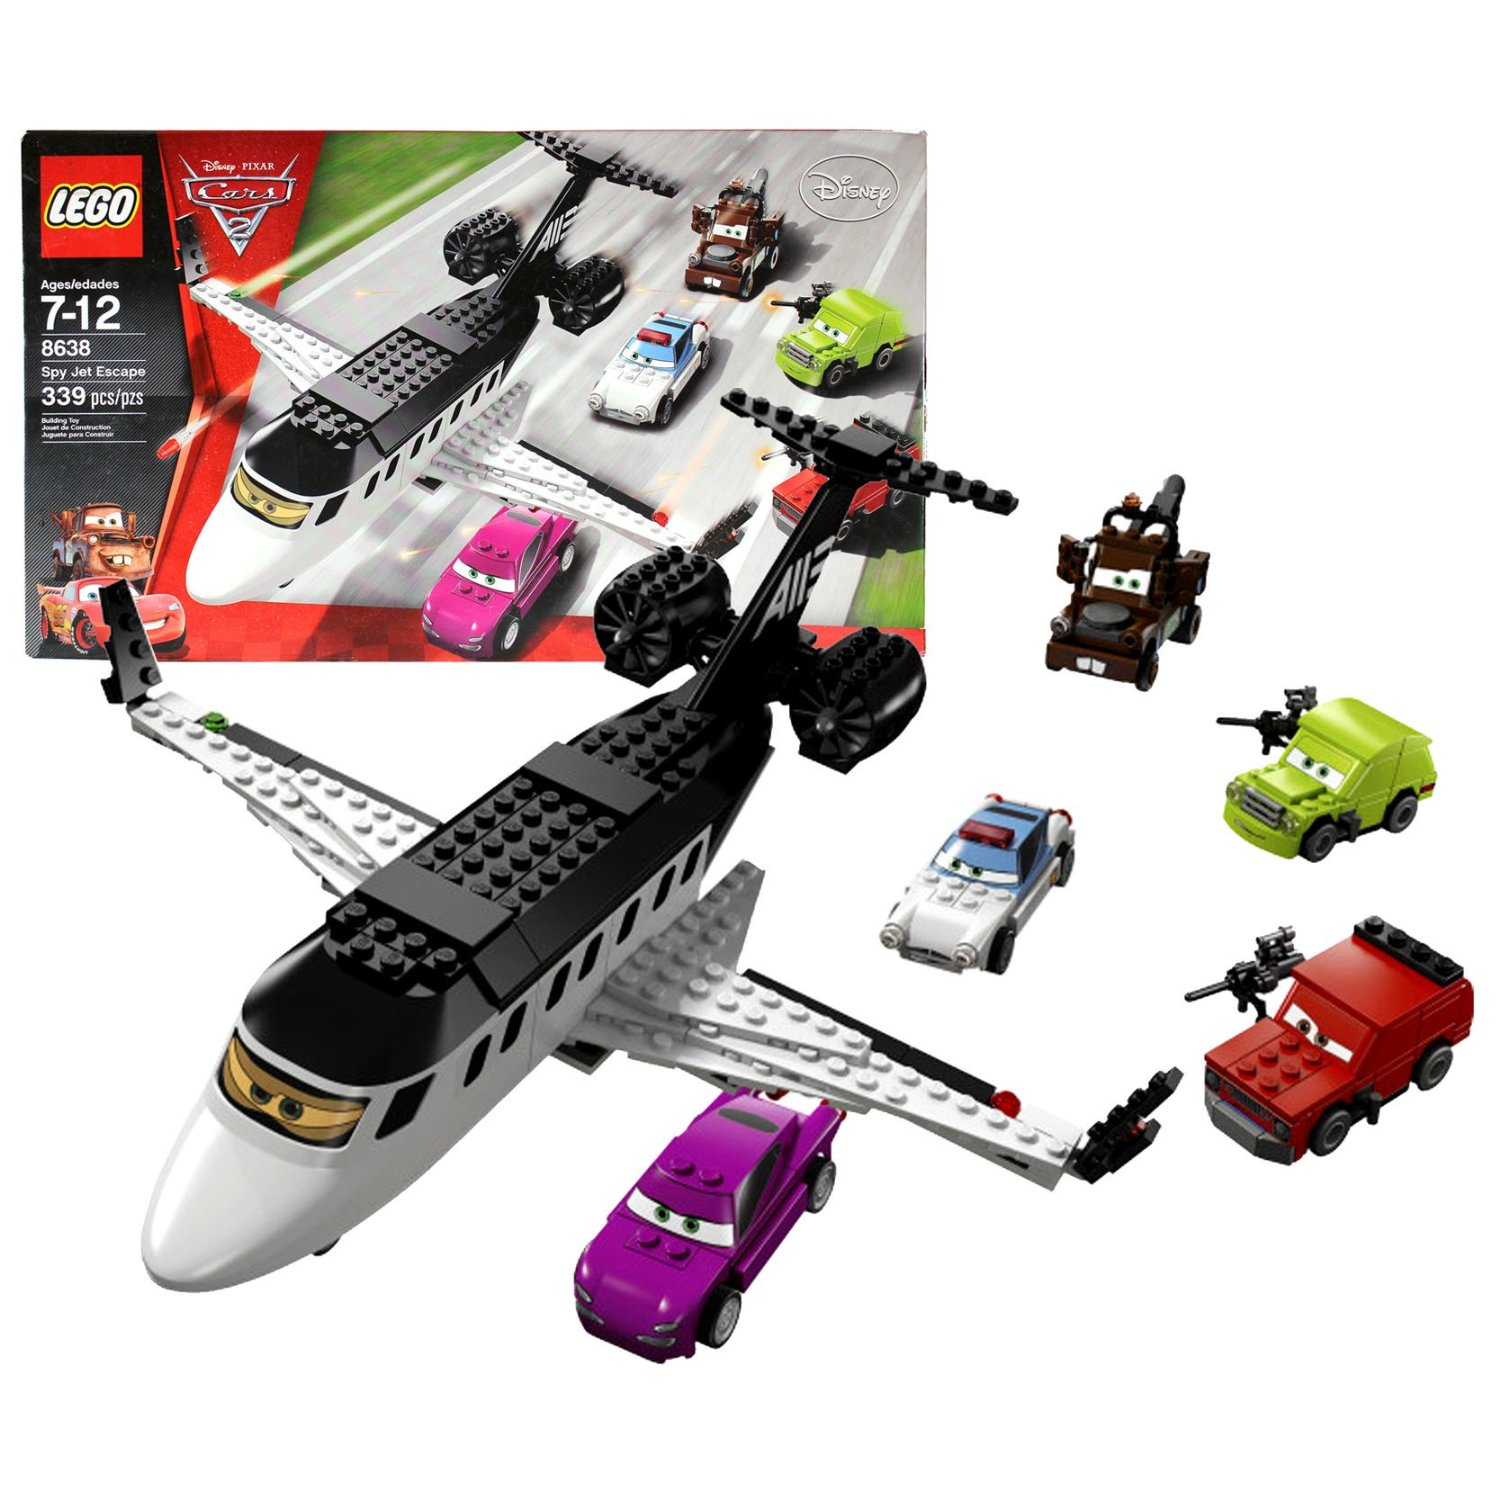 "Lego Year 2011 Disney Pixar ""Cars 2"" Movie Scene Set #8638 - SPY JET ESCAPE with Siddeley the Spy Jet, Police Car Finn McMissile, Holley Shiftwell, Agent Mater, Grem and Acer Lemons (Total Pieces: 339)"